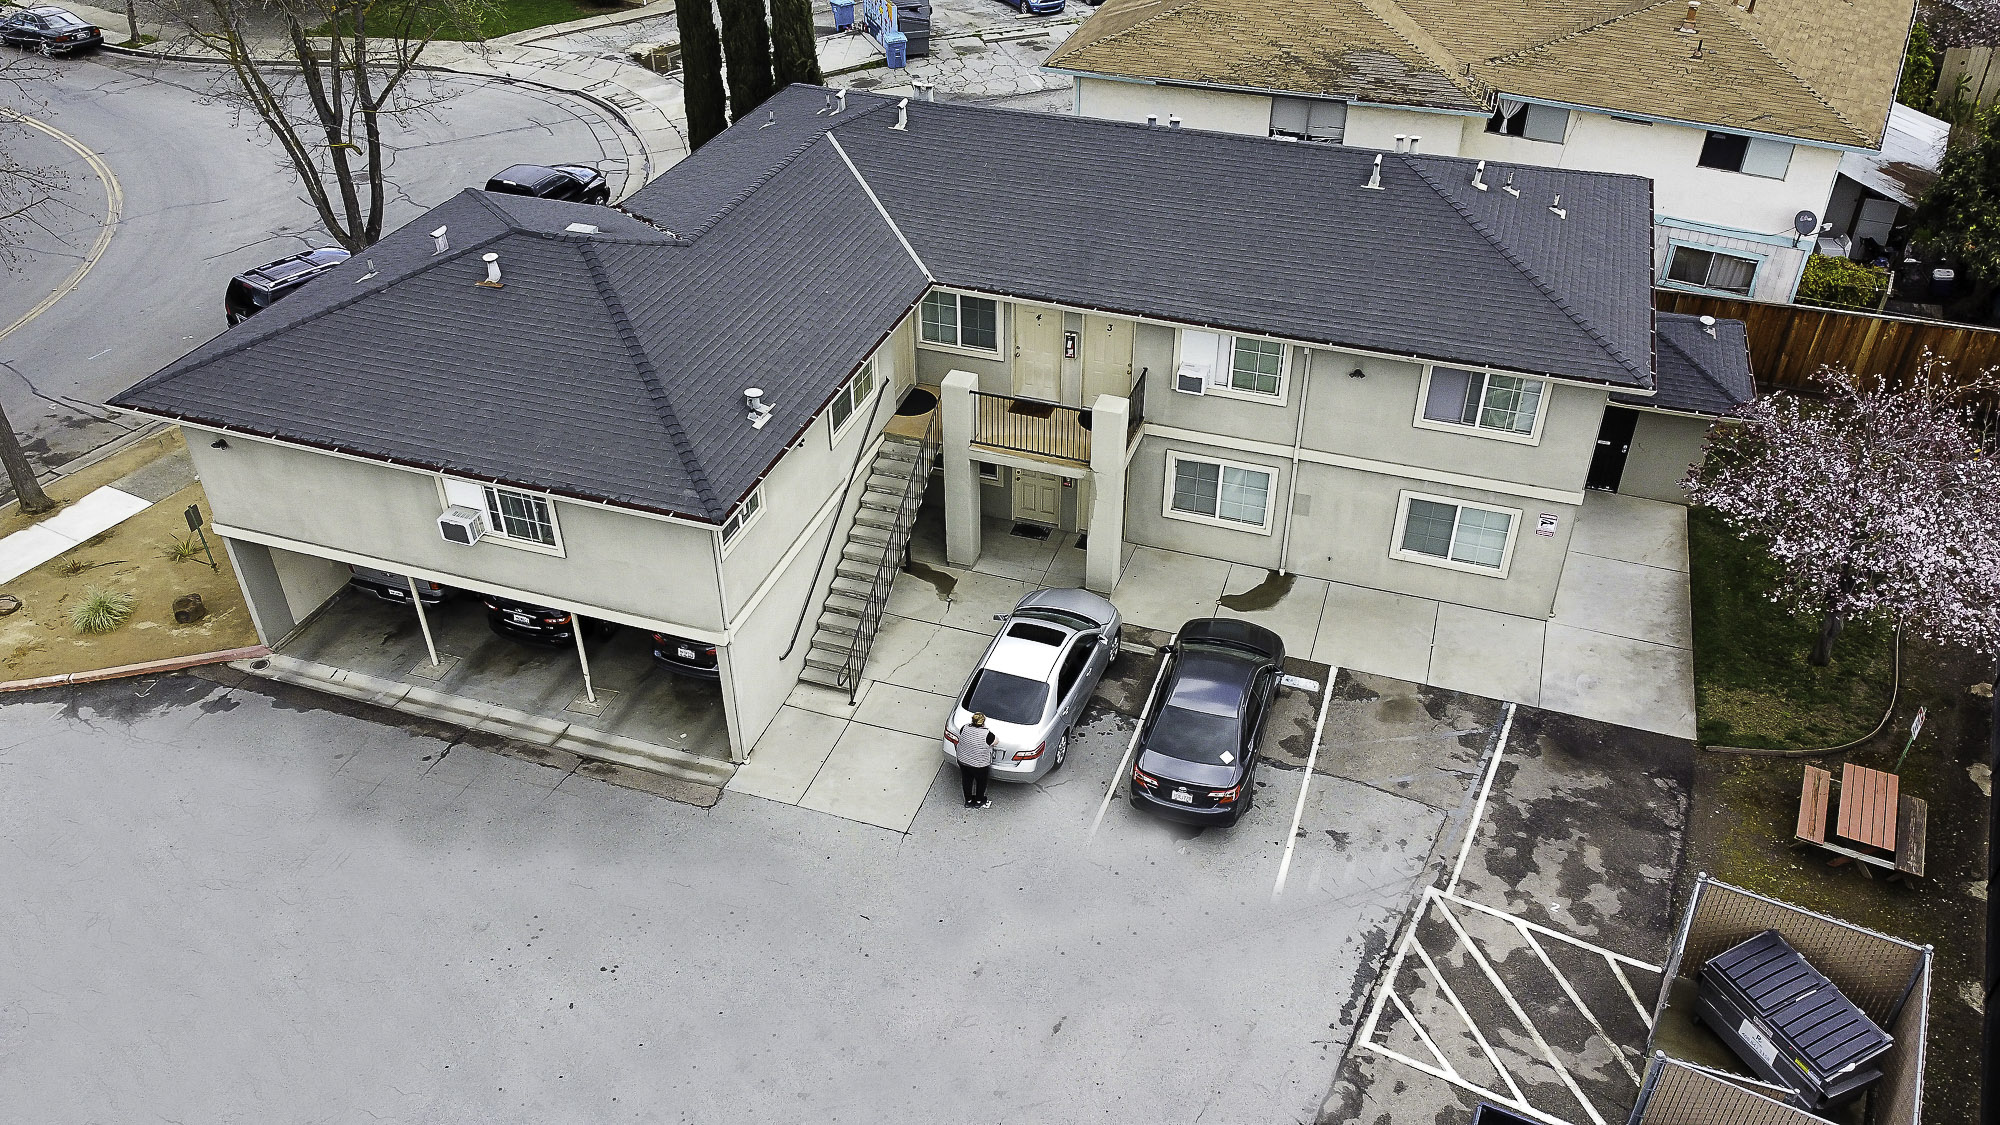 7460 Rogers Lane building frontage aerial image